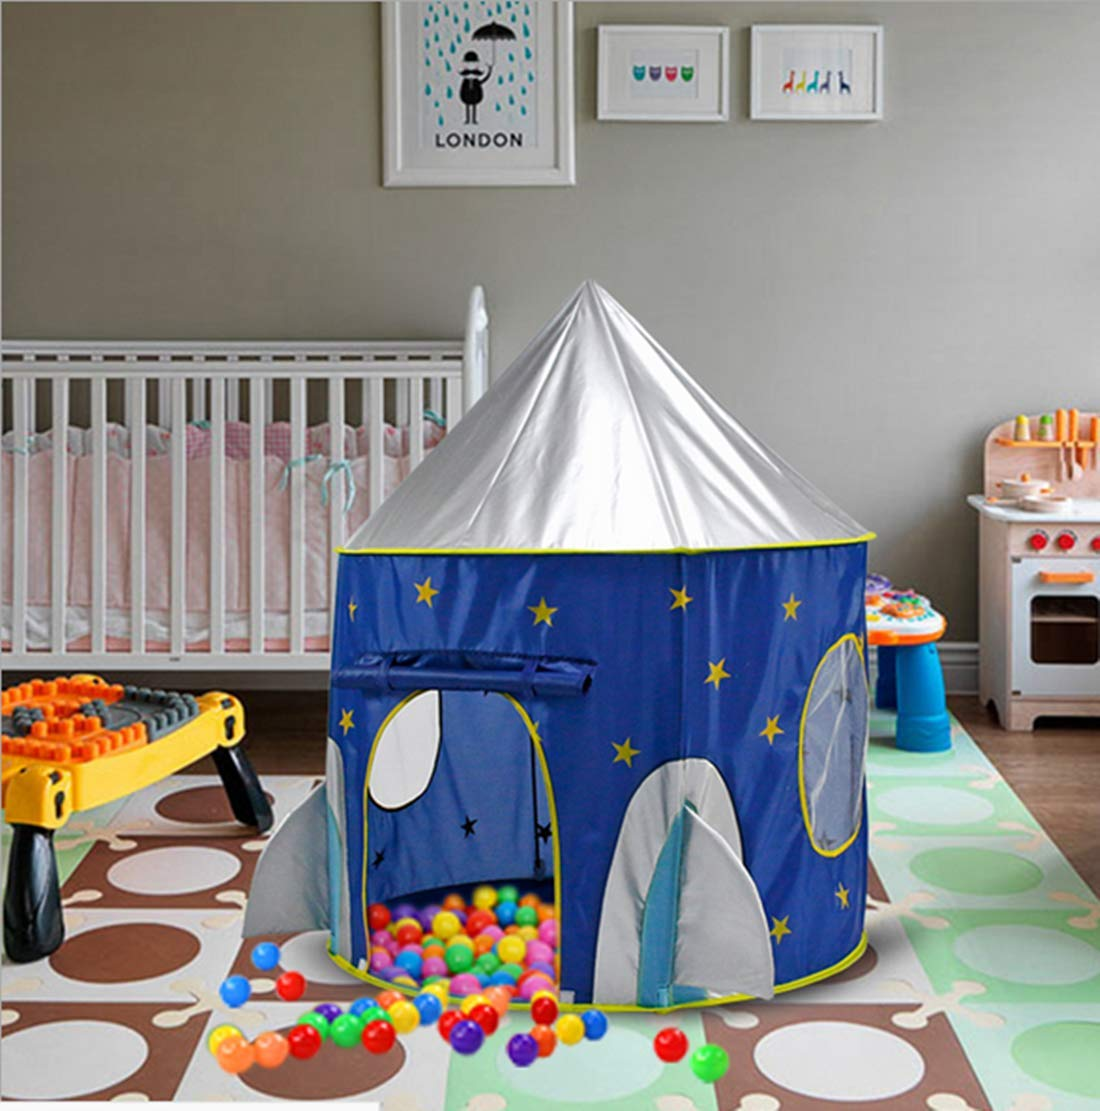 Parent-Child Interactive Castles Yurts Beneyond Childrens Indoor and Outdoor Game Tents Toy Houses Space Capsules Childrens Tents,Play Tent Children/'s Tents/,Play Tent Bunfunny